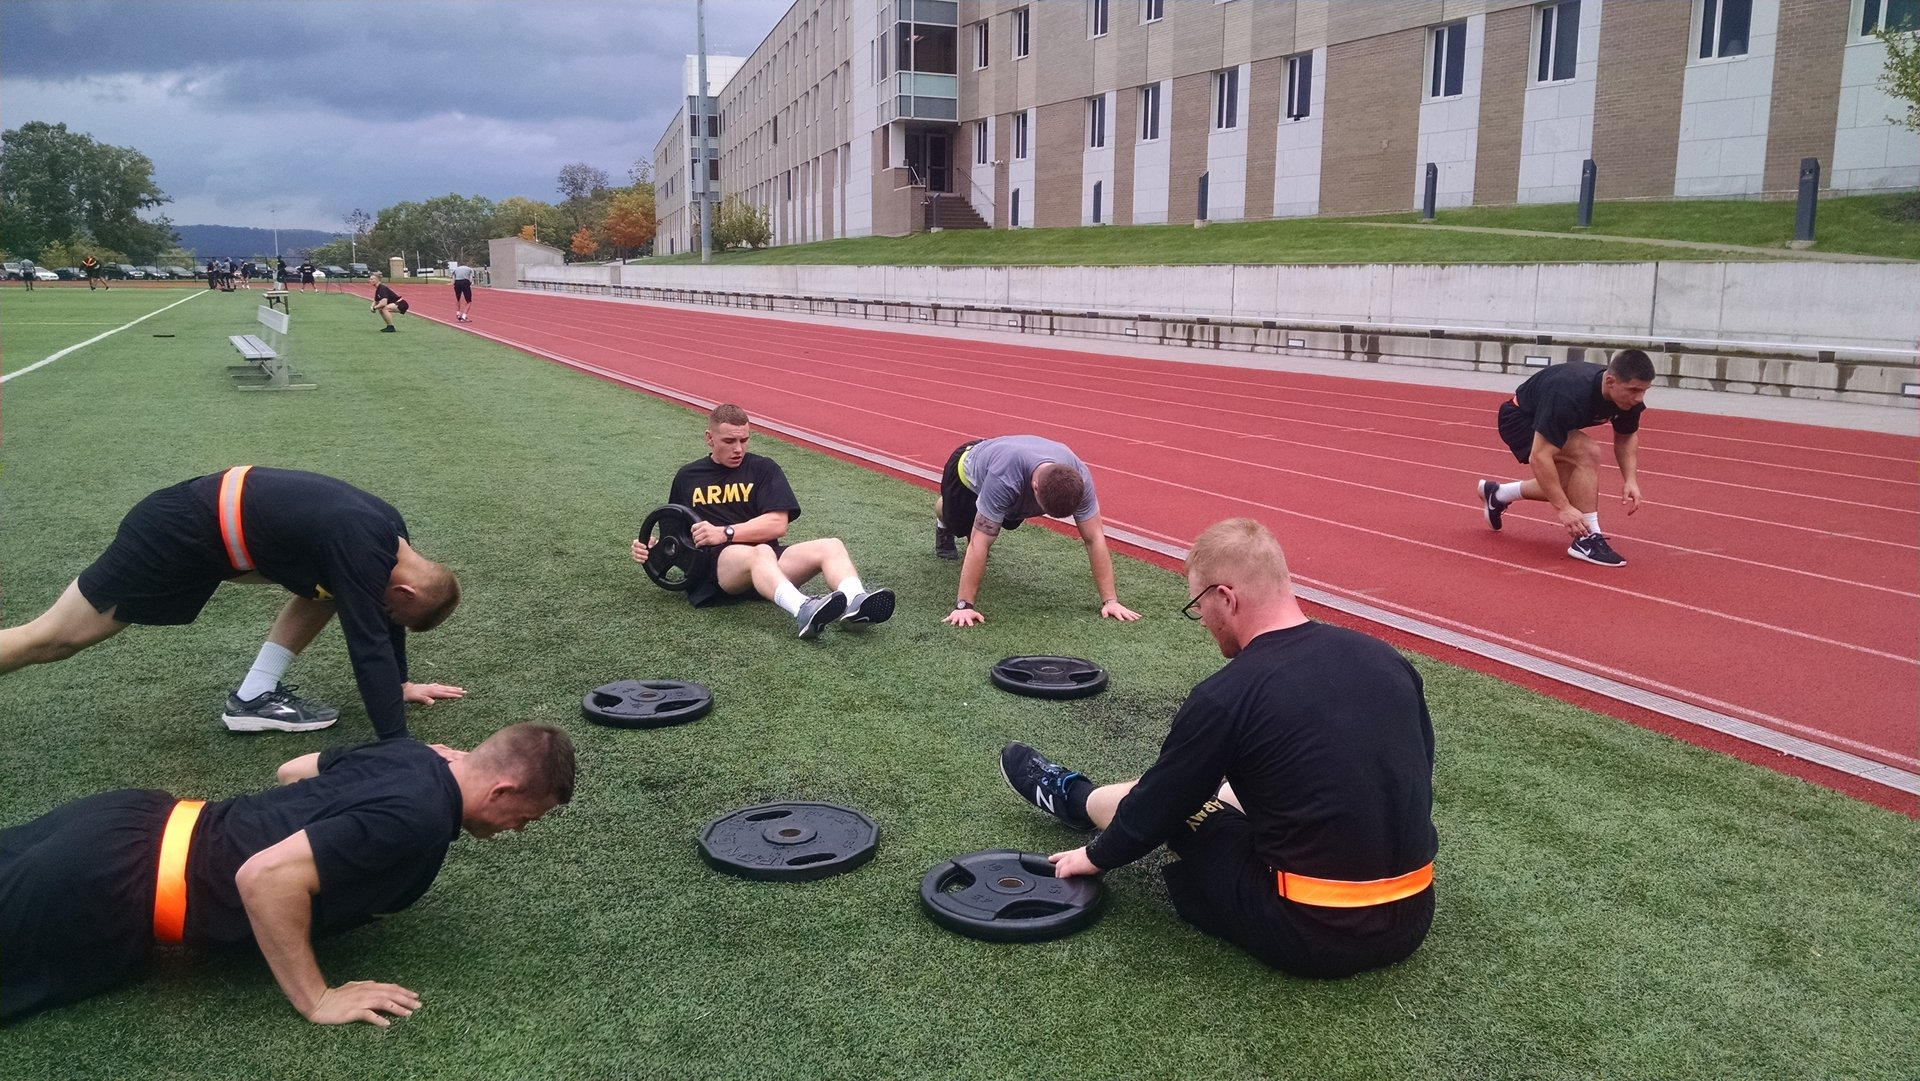 Cadets training on the track